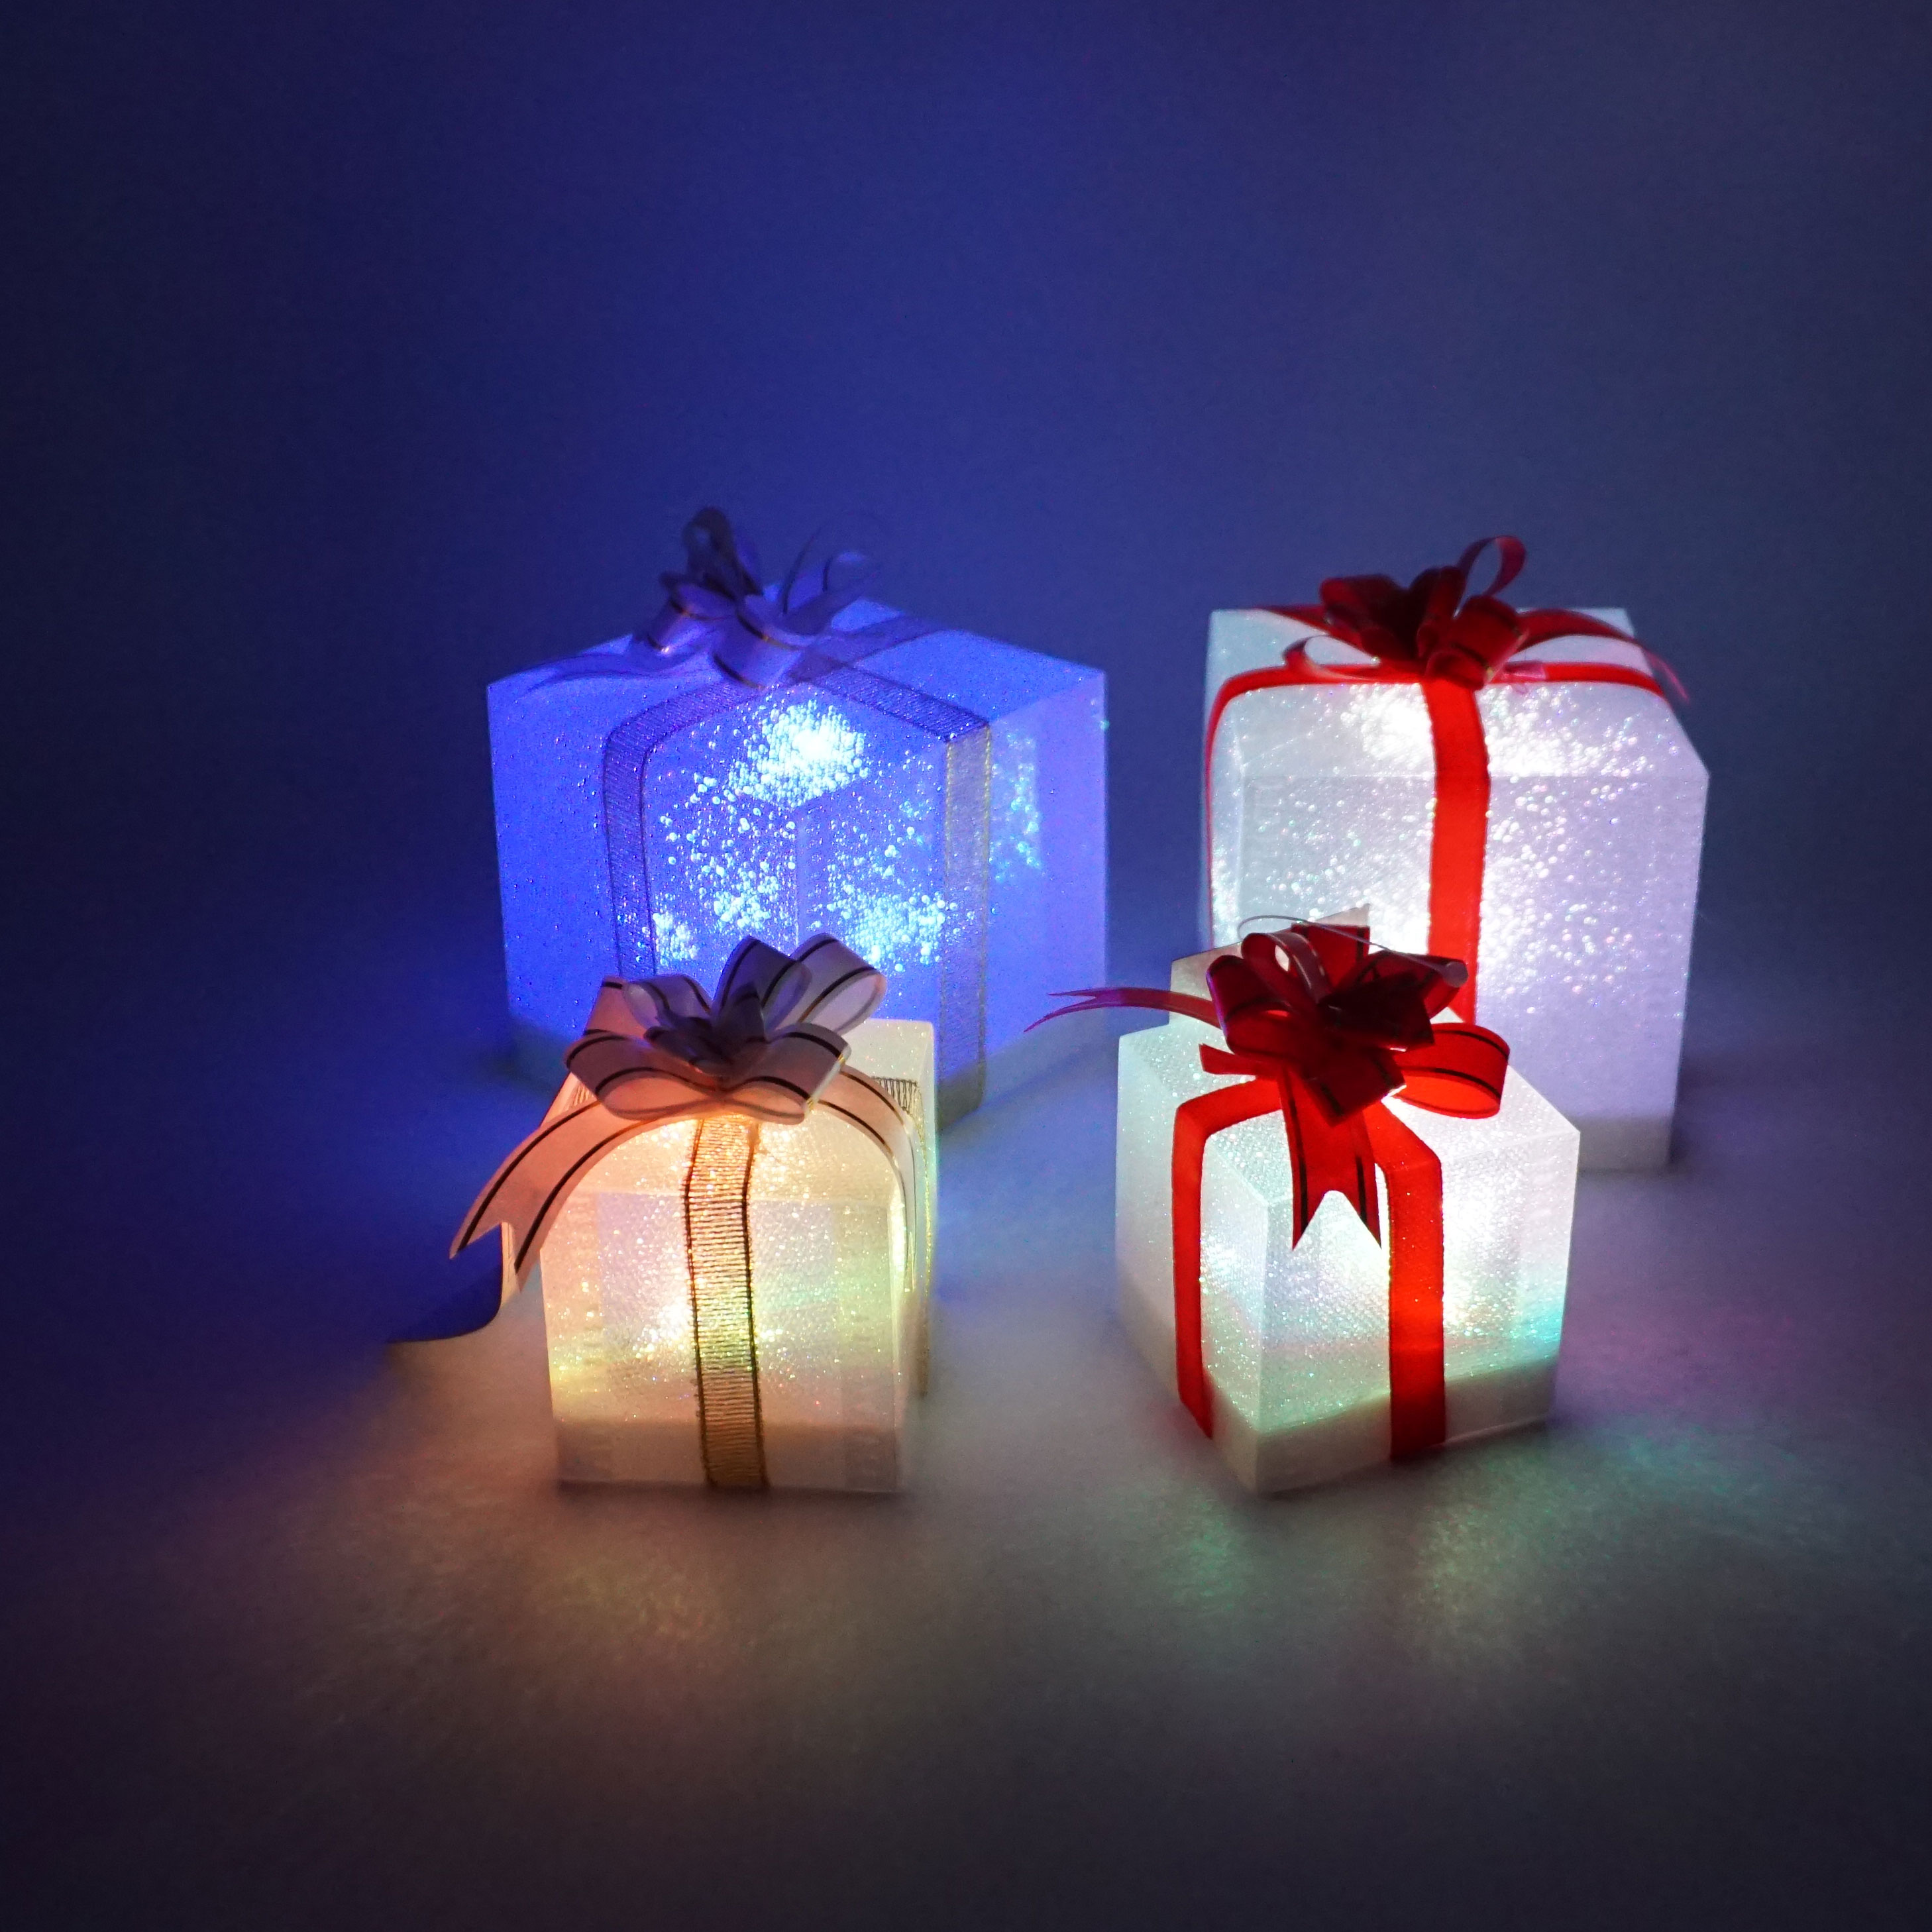 LED flashing gift box with color changing